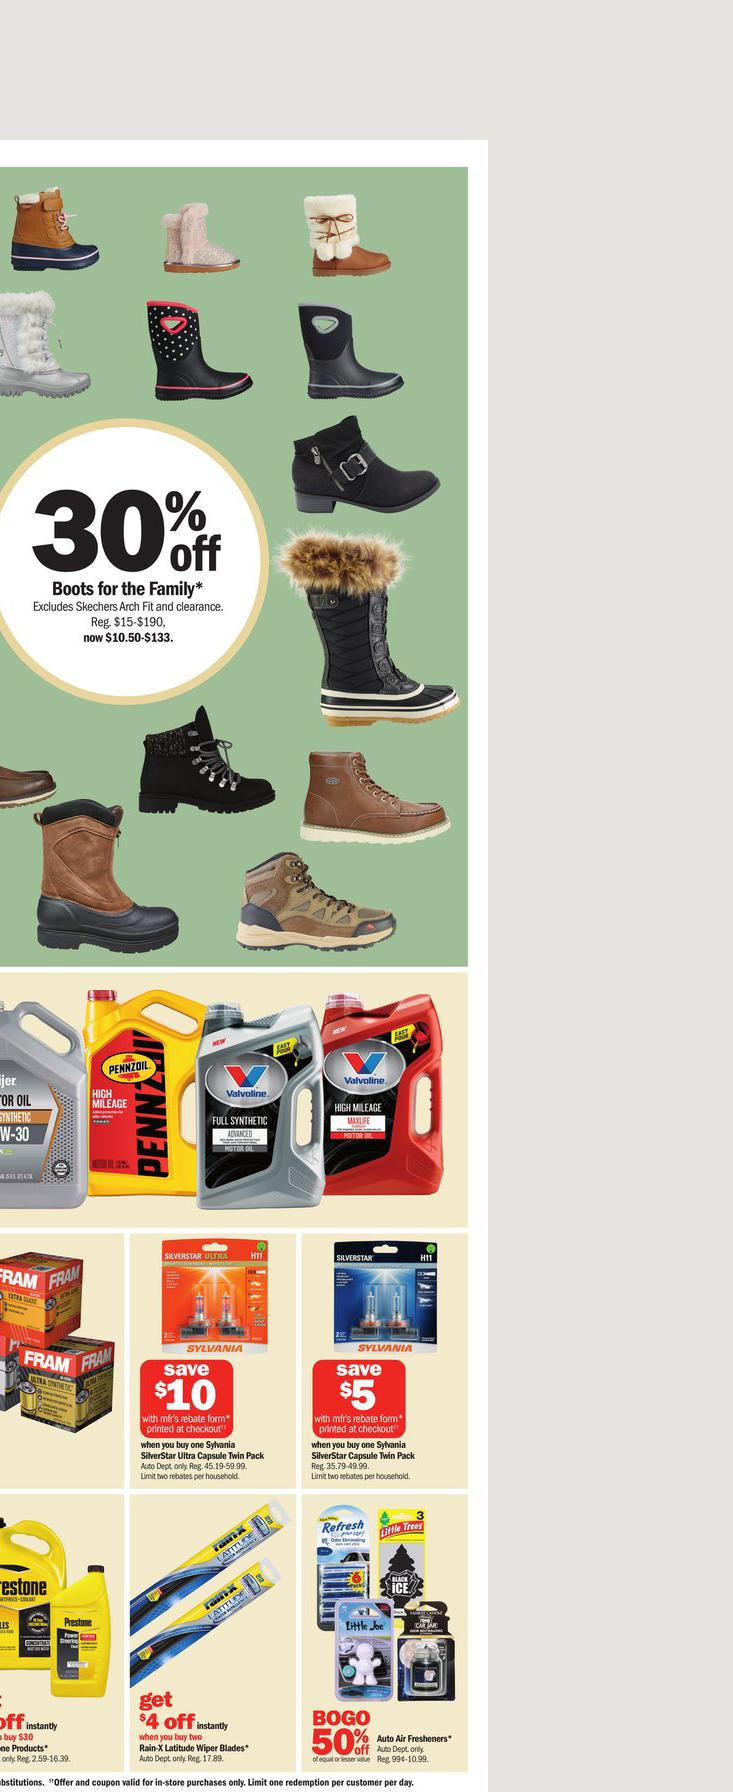 10.10.2021 Meijer ad 22. page